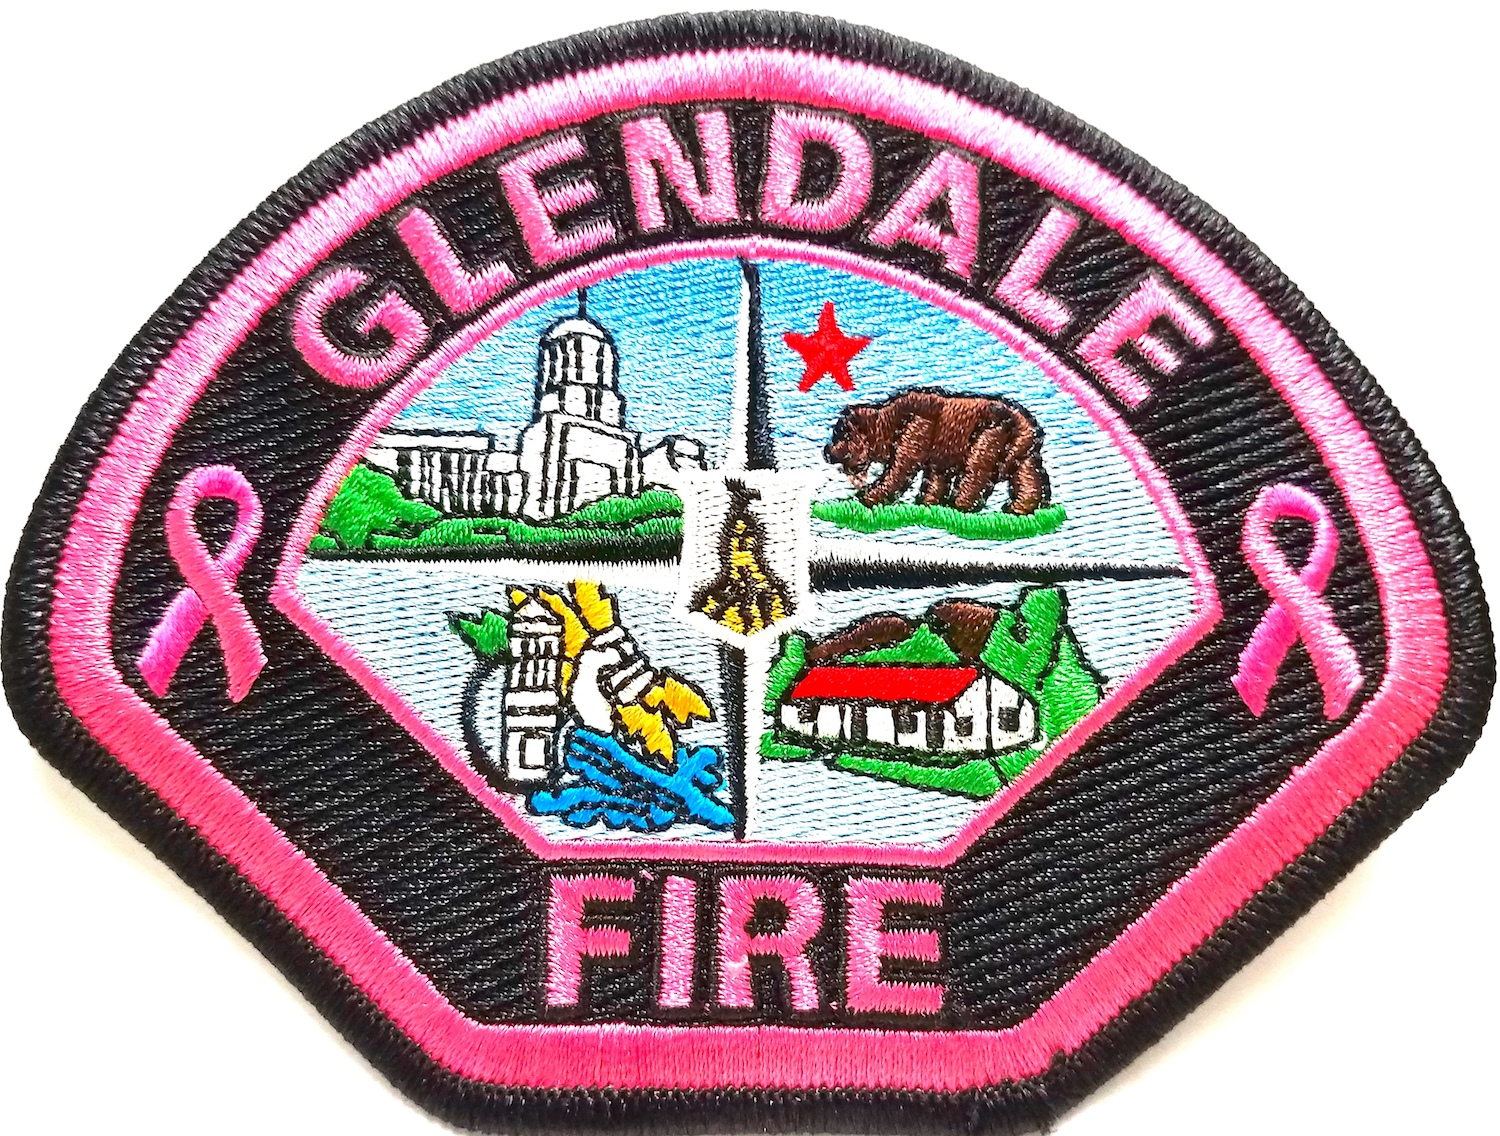 Glendale Fire Department Pink Patch.jpg